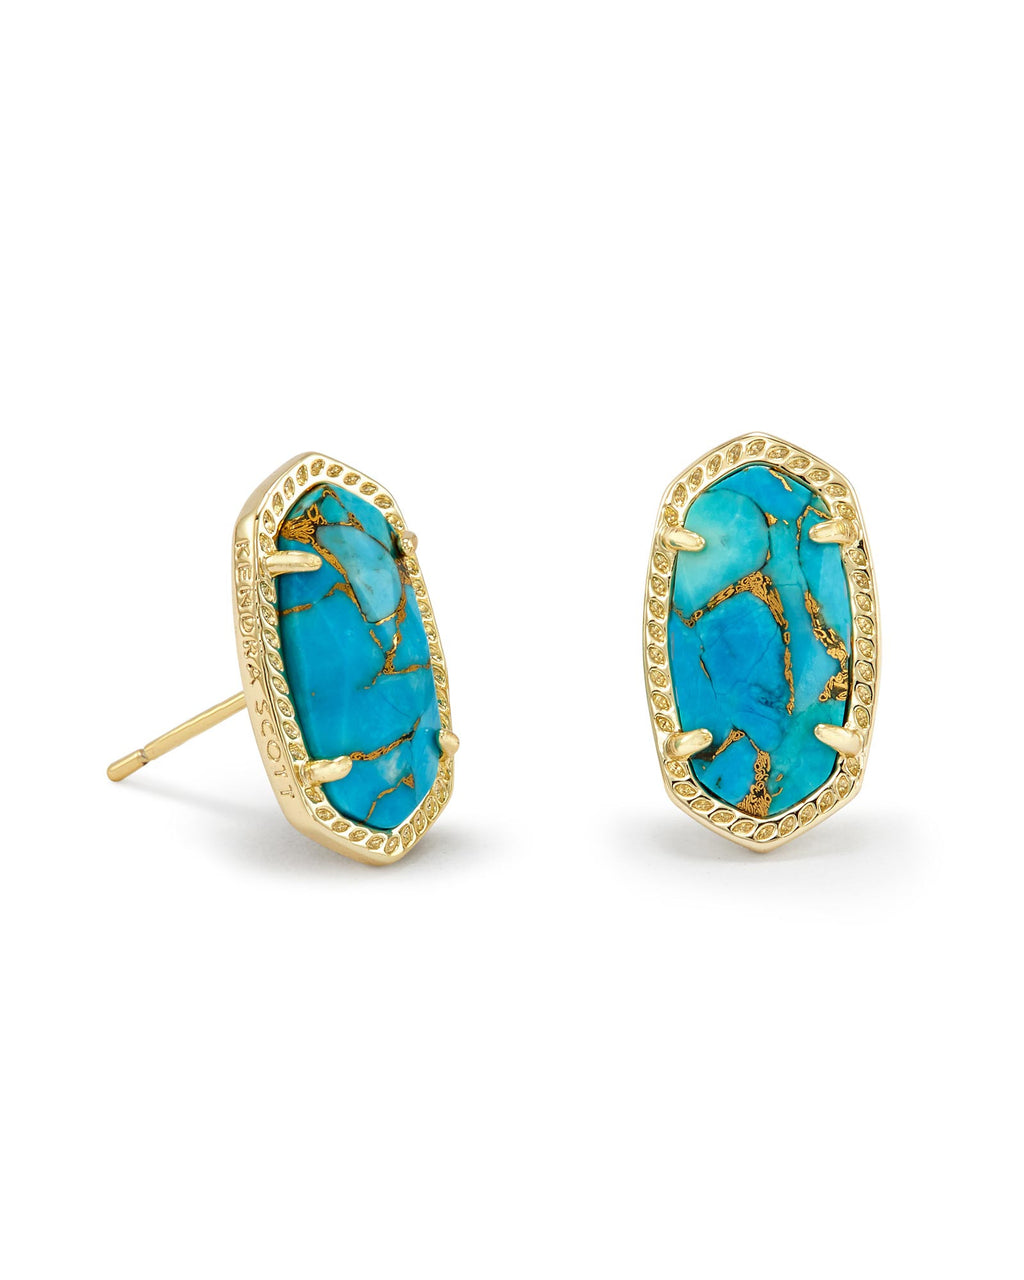 KENDRA SCOTT Ellie Gold Earrings in Bronze Veined Turquoise